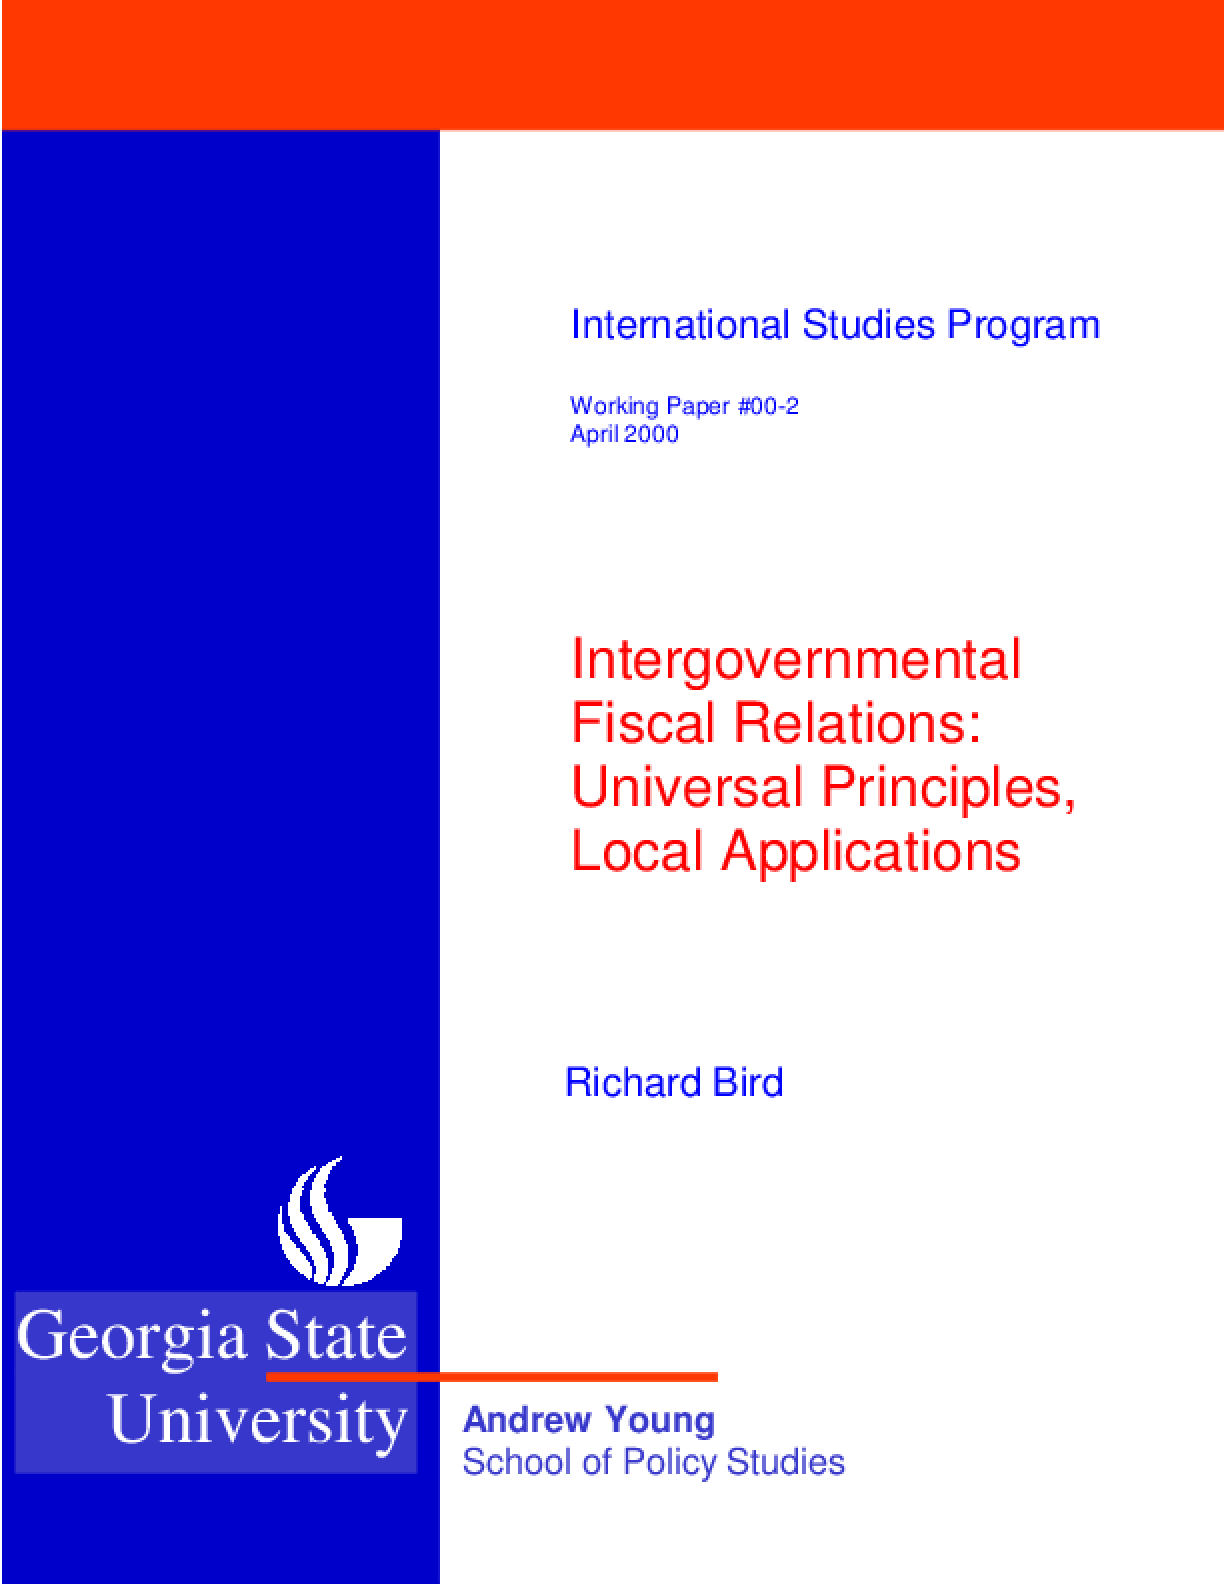 Intergovernmental Fiscal Relations: Universal Principles, Local Applications